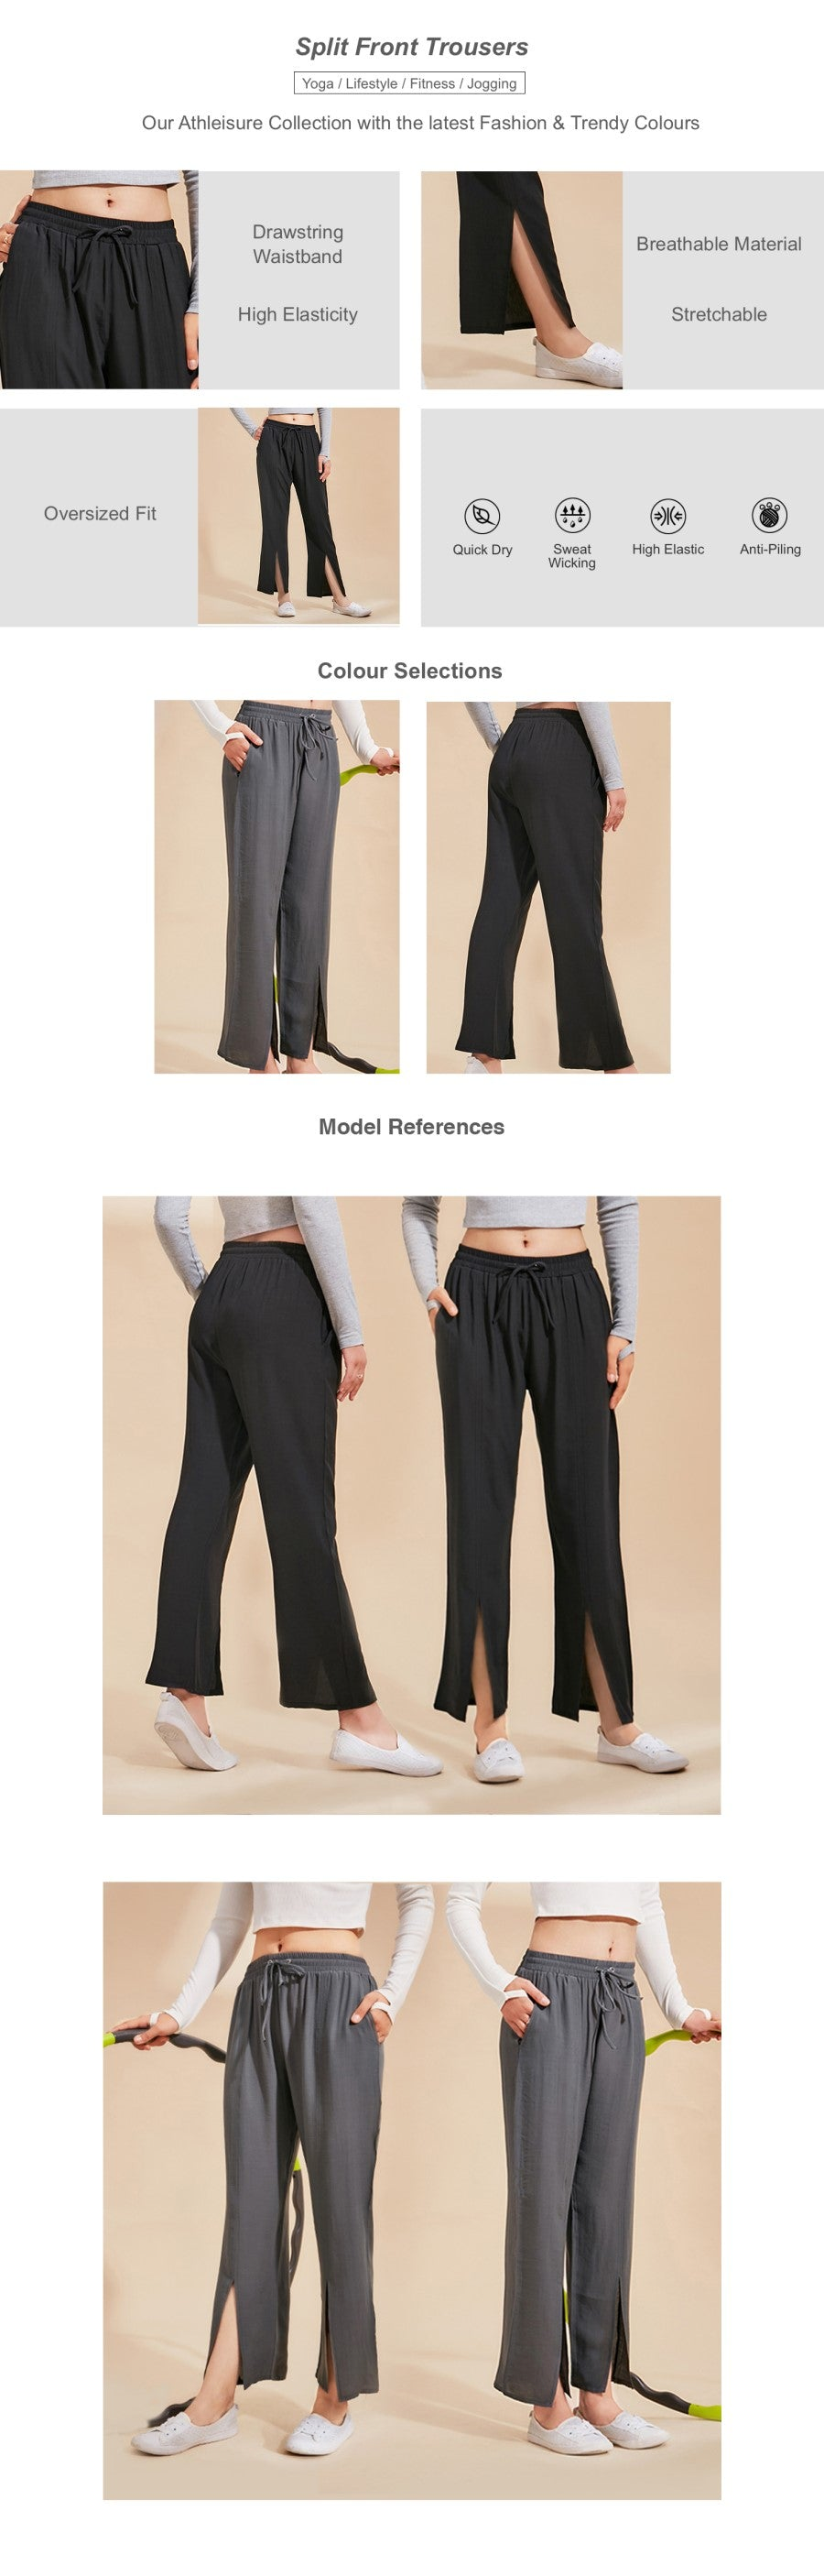 Split Front Trousers